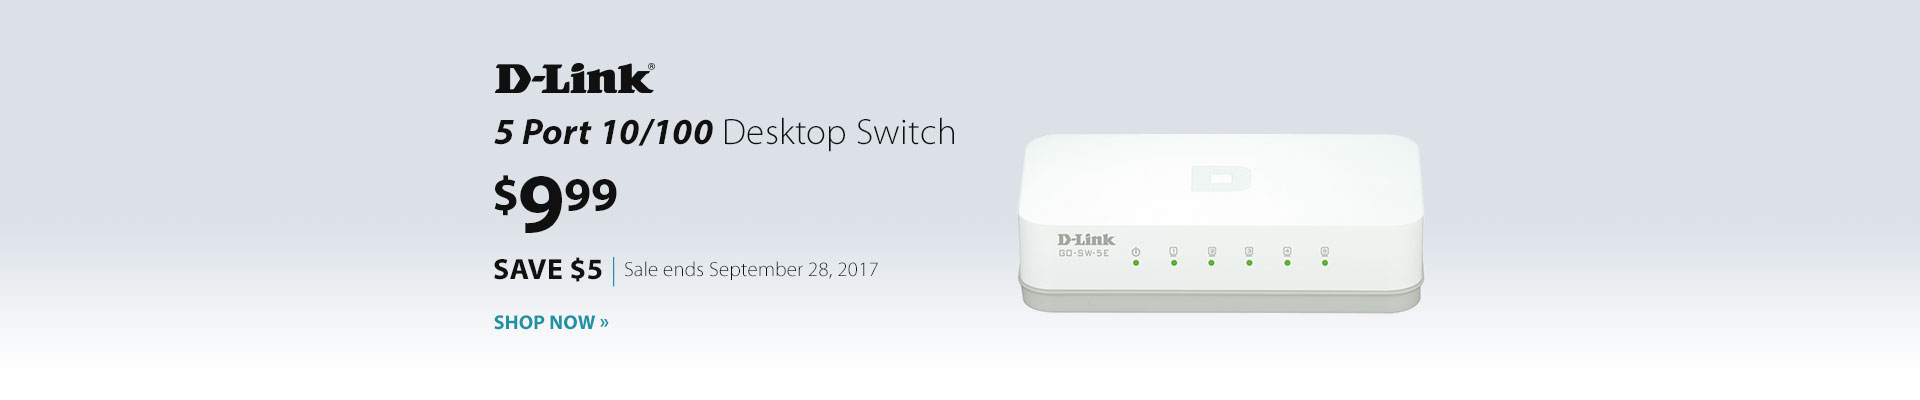 D-Link Desktop Switch